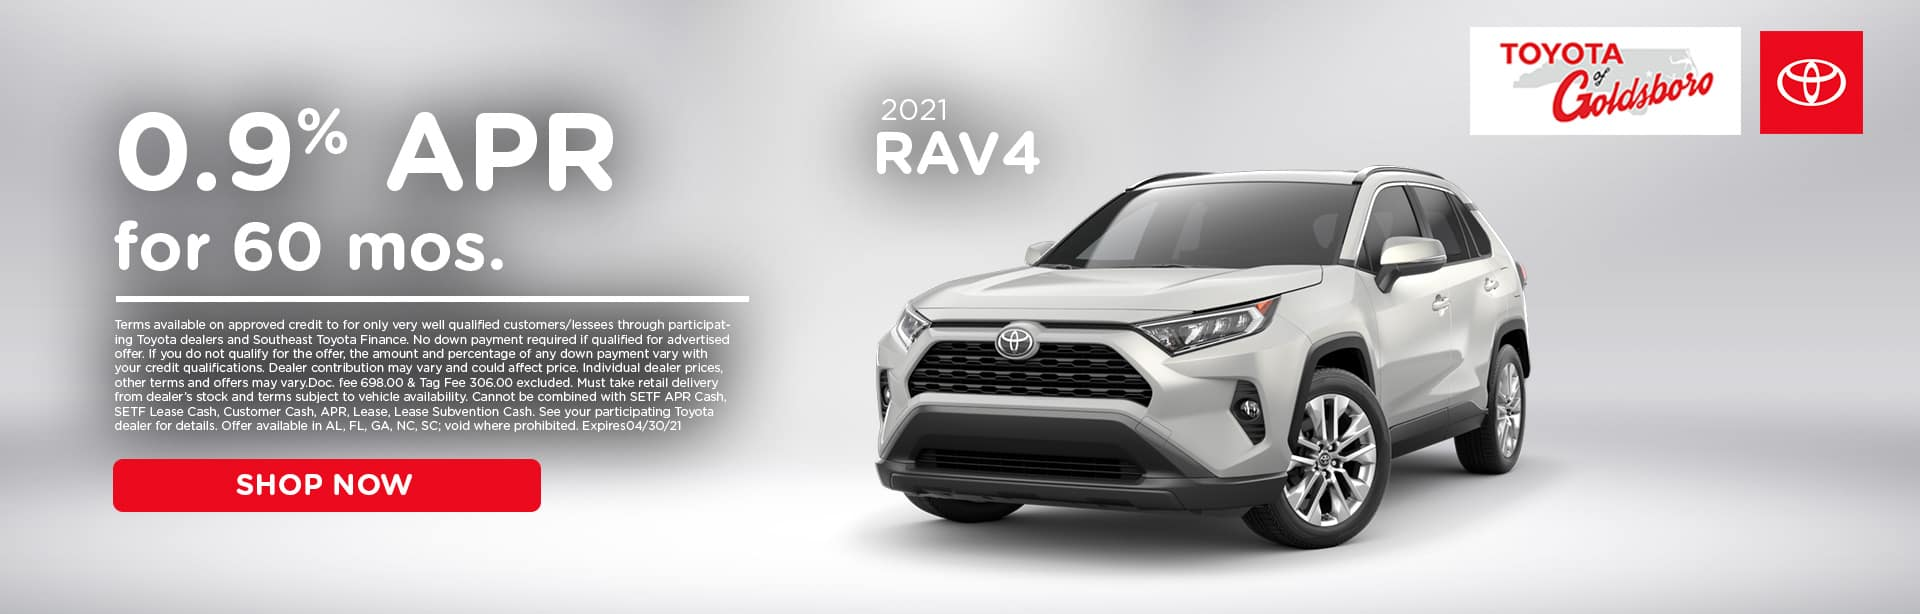 toyota-of-goldsboro-april-rav4-special-banner